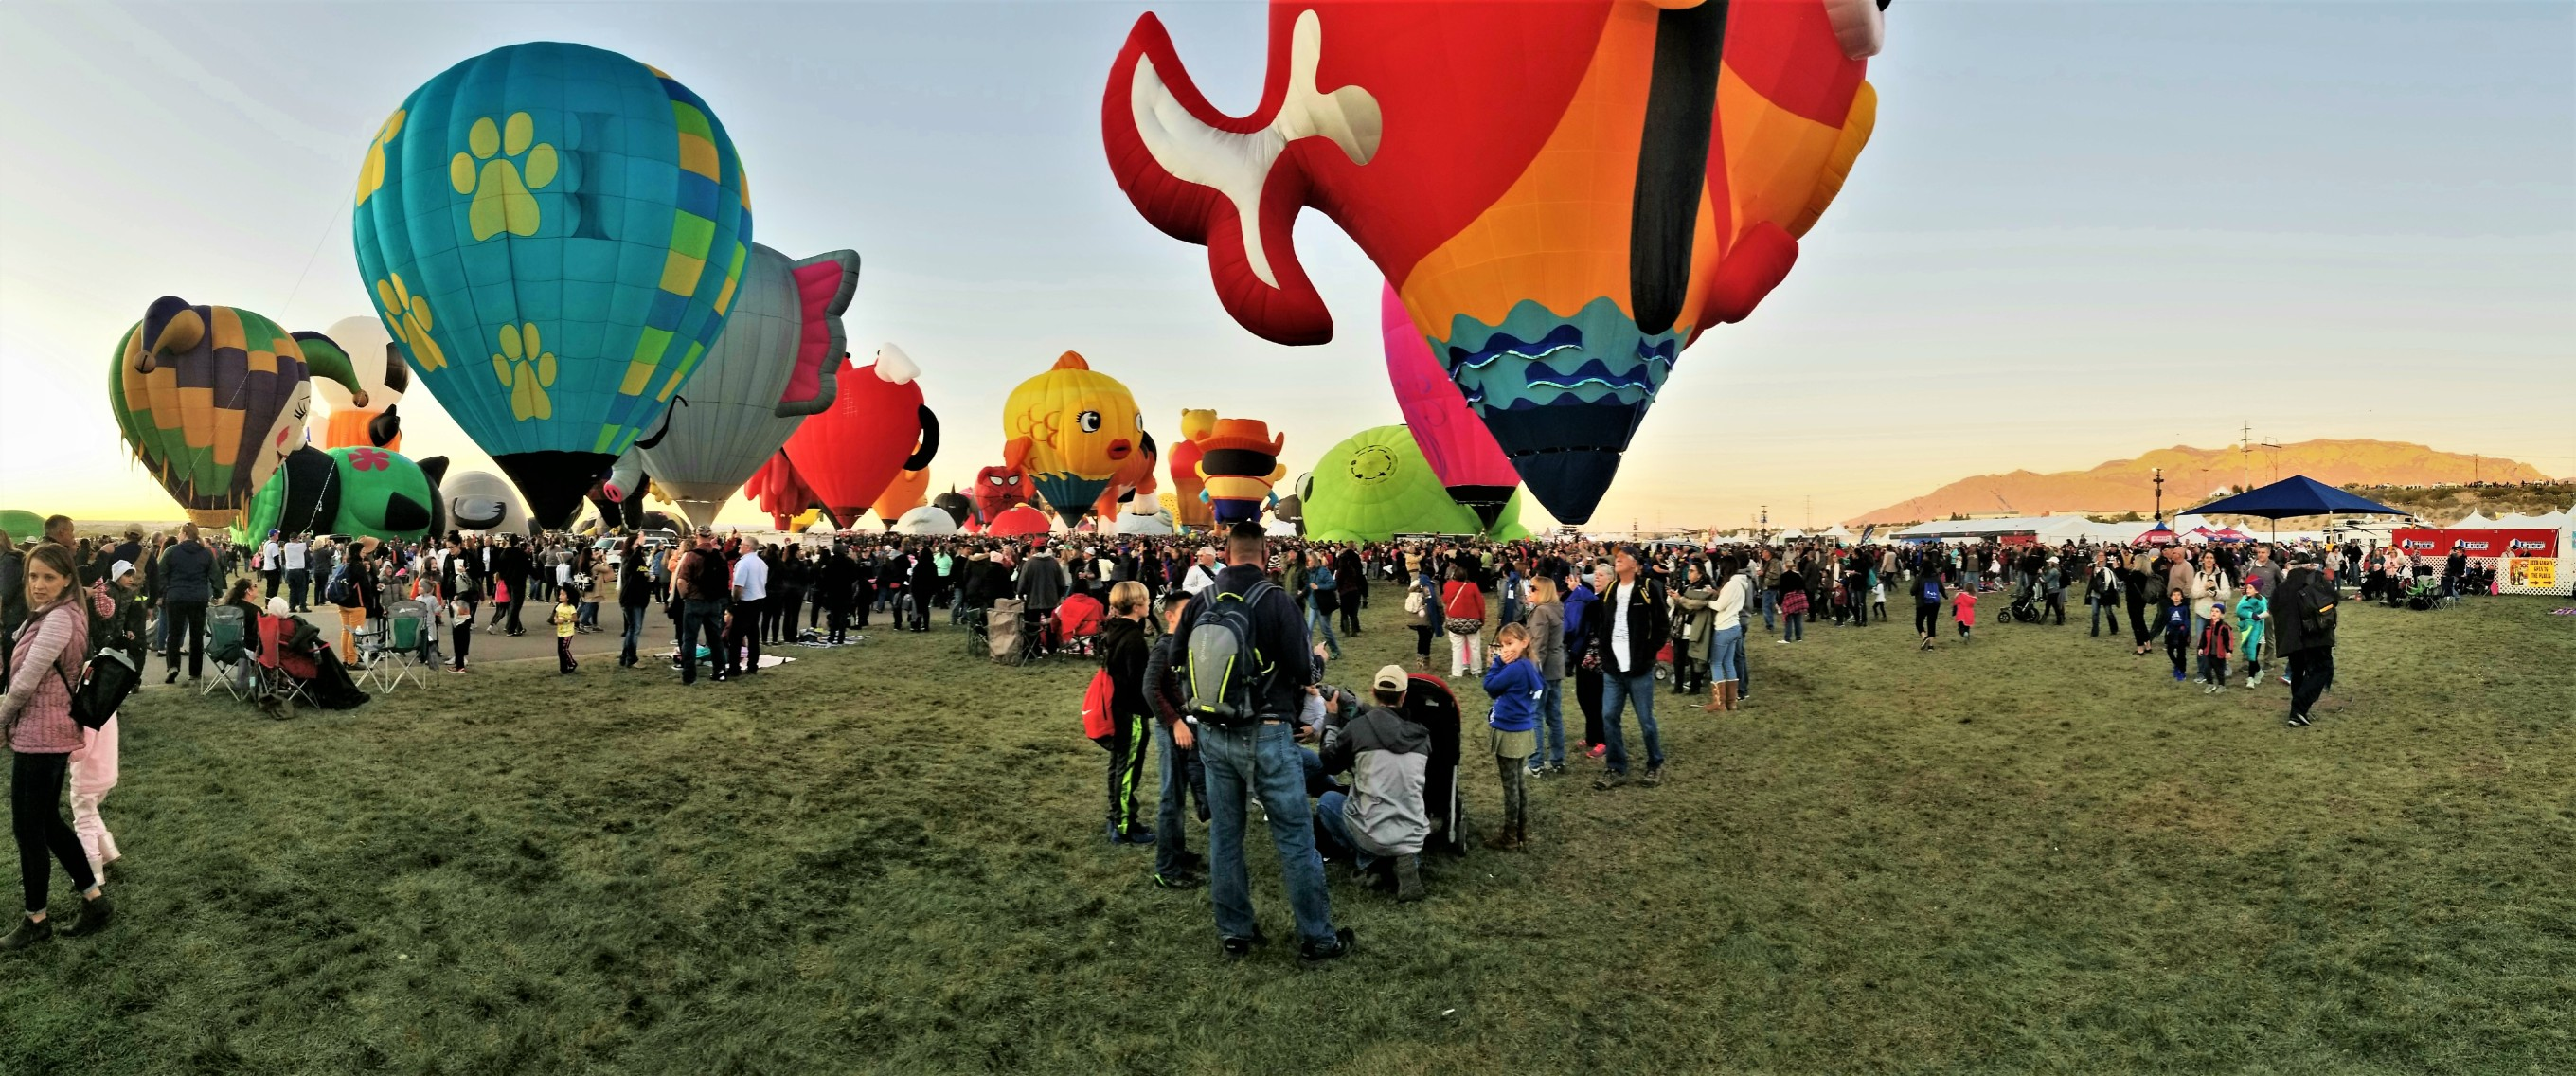 staging the balloons